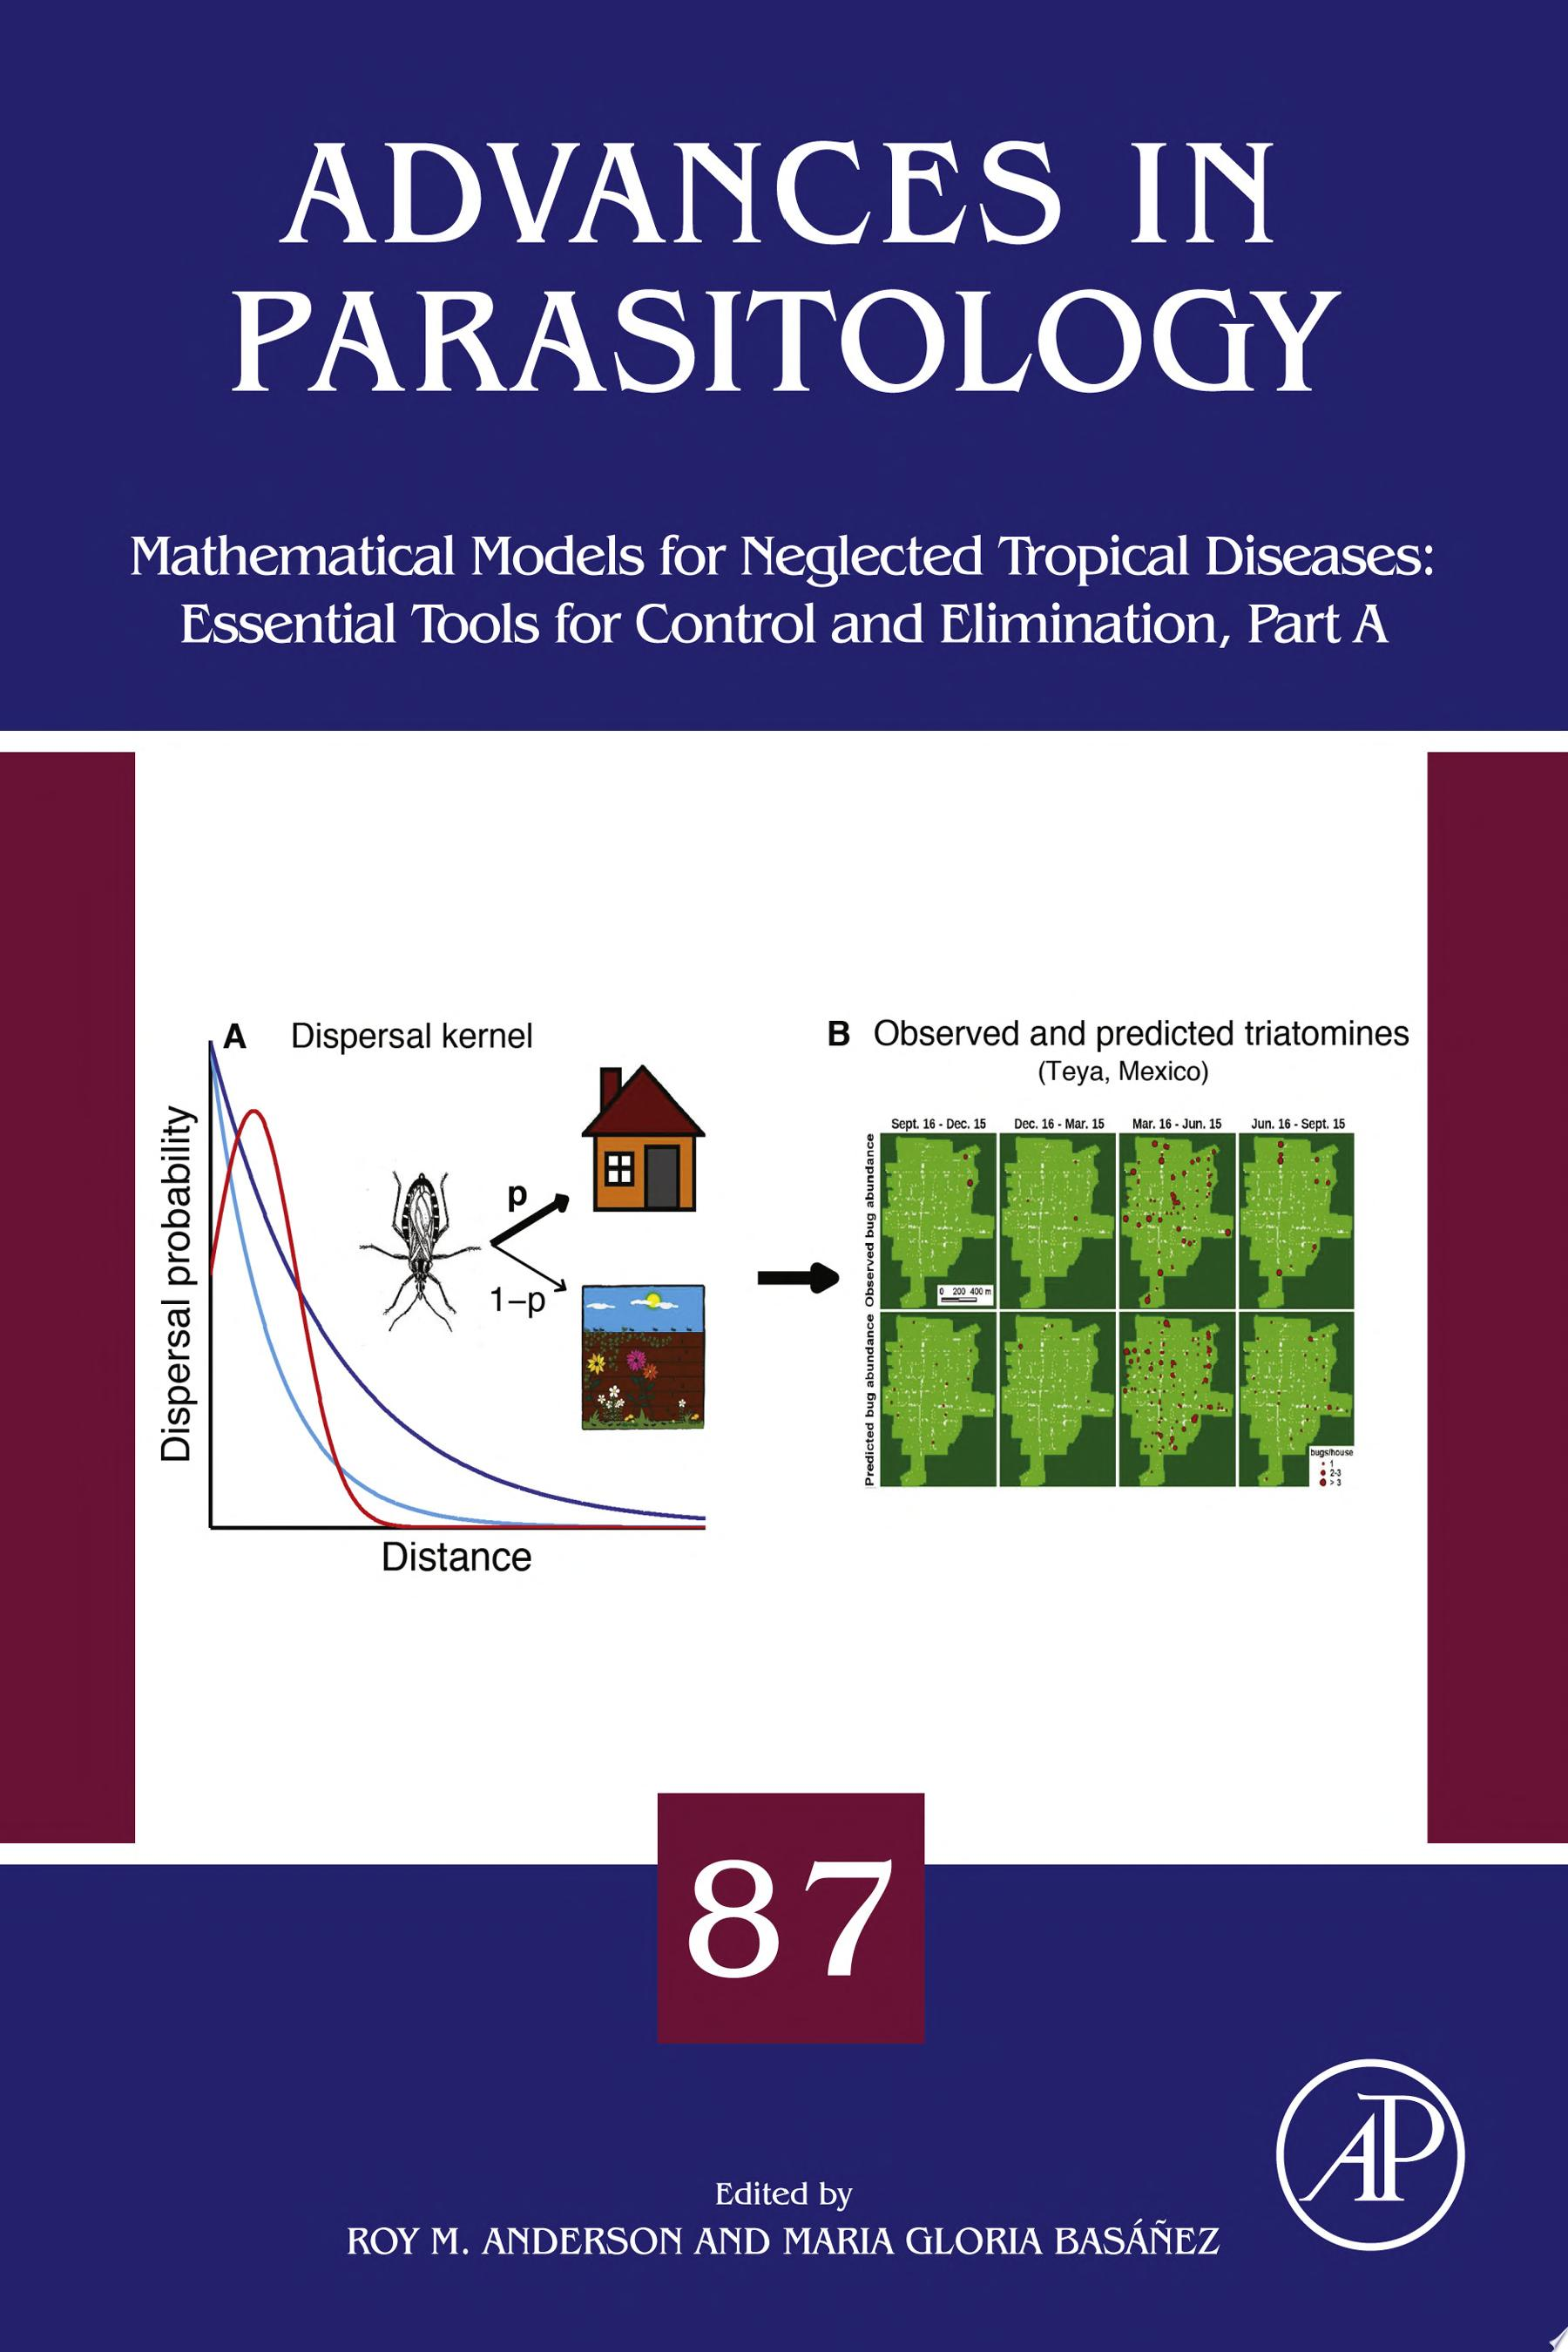 Mathematical Models for Neglected Tropical Diseases  Essential Tools for Control and Elimination